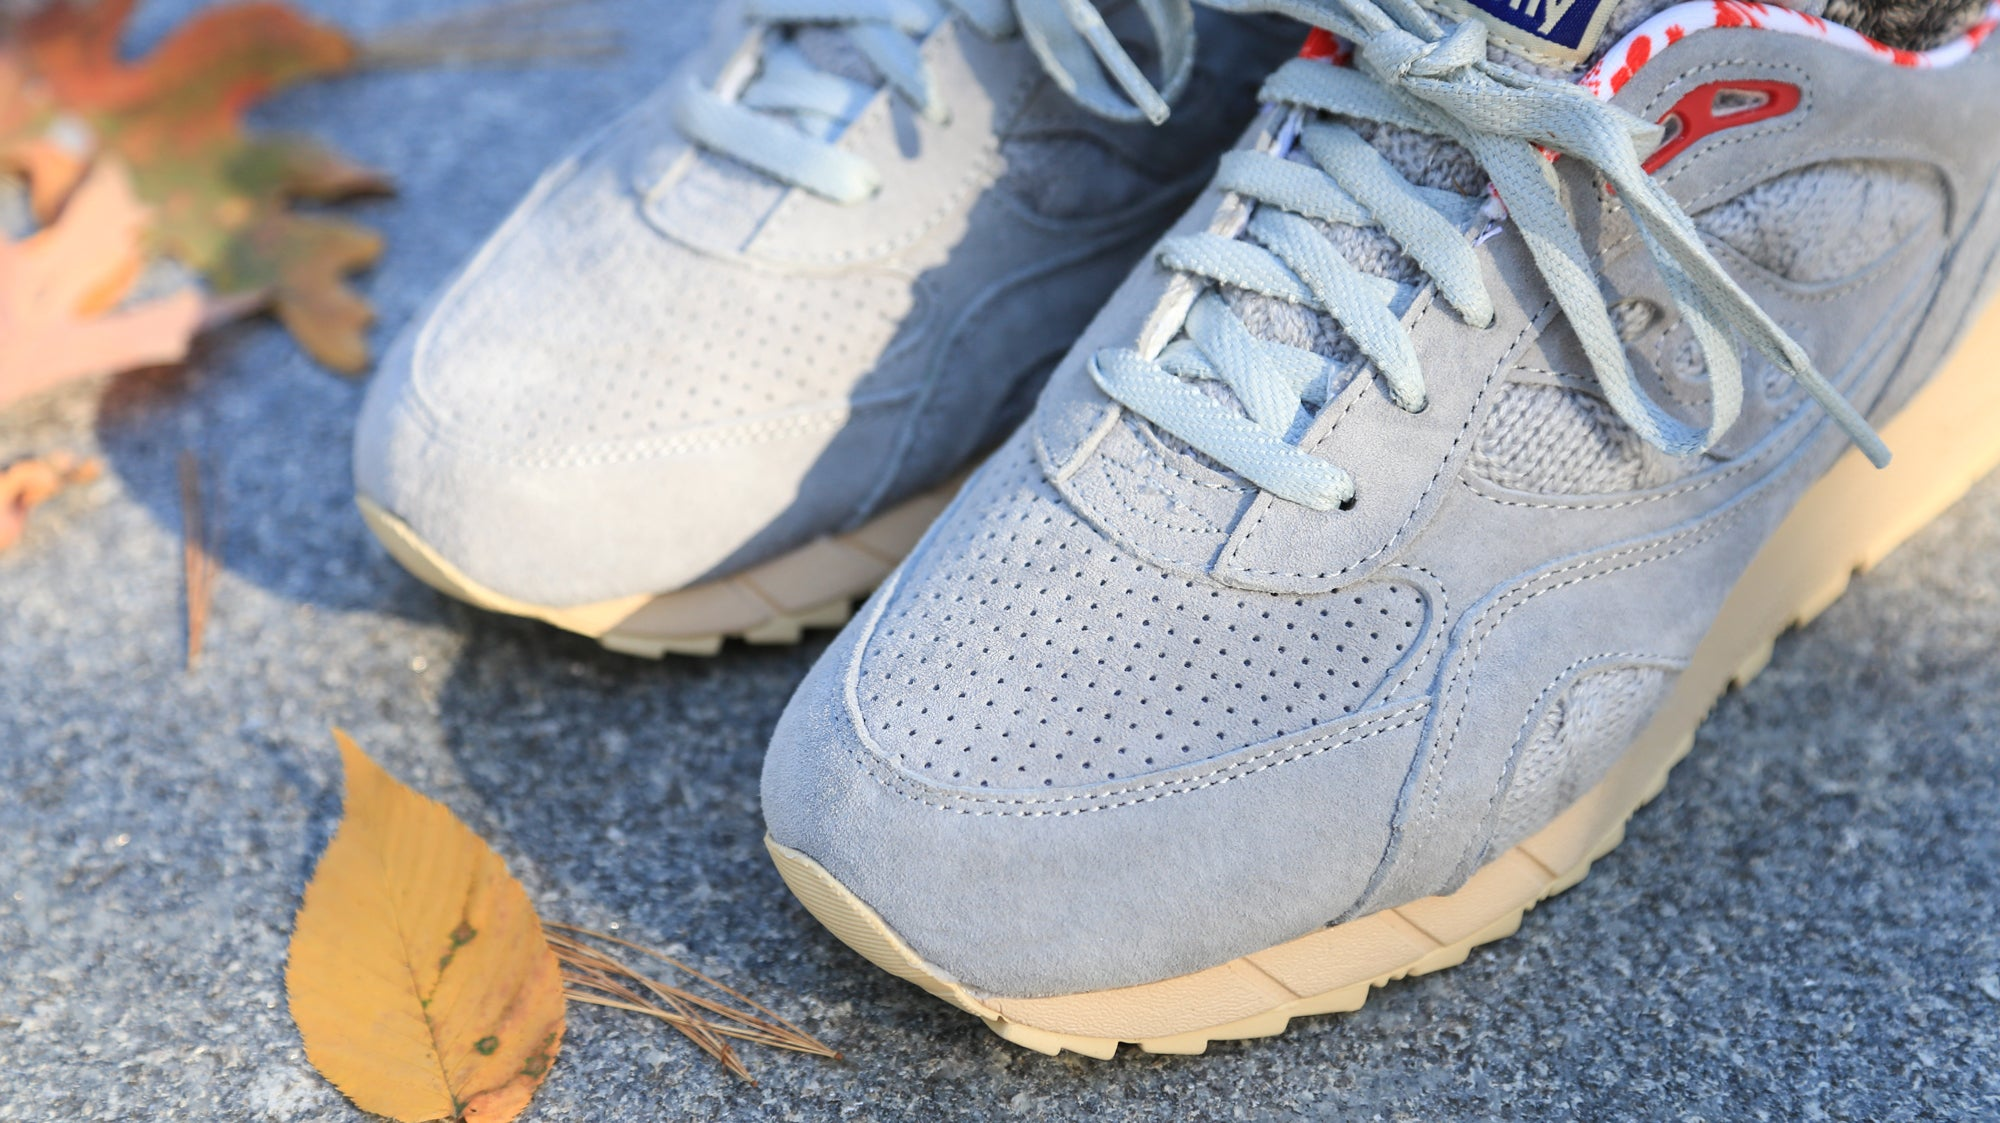 Bodega x Saucony Elite 'Sweater' Pack